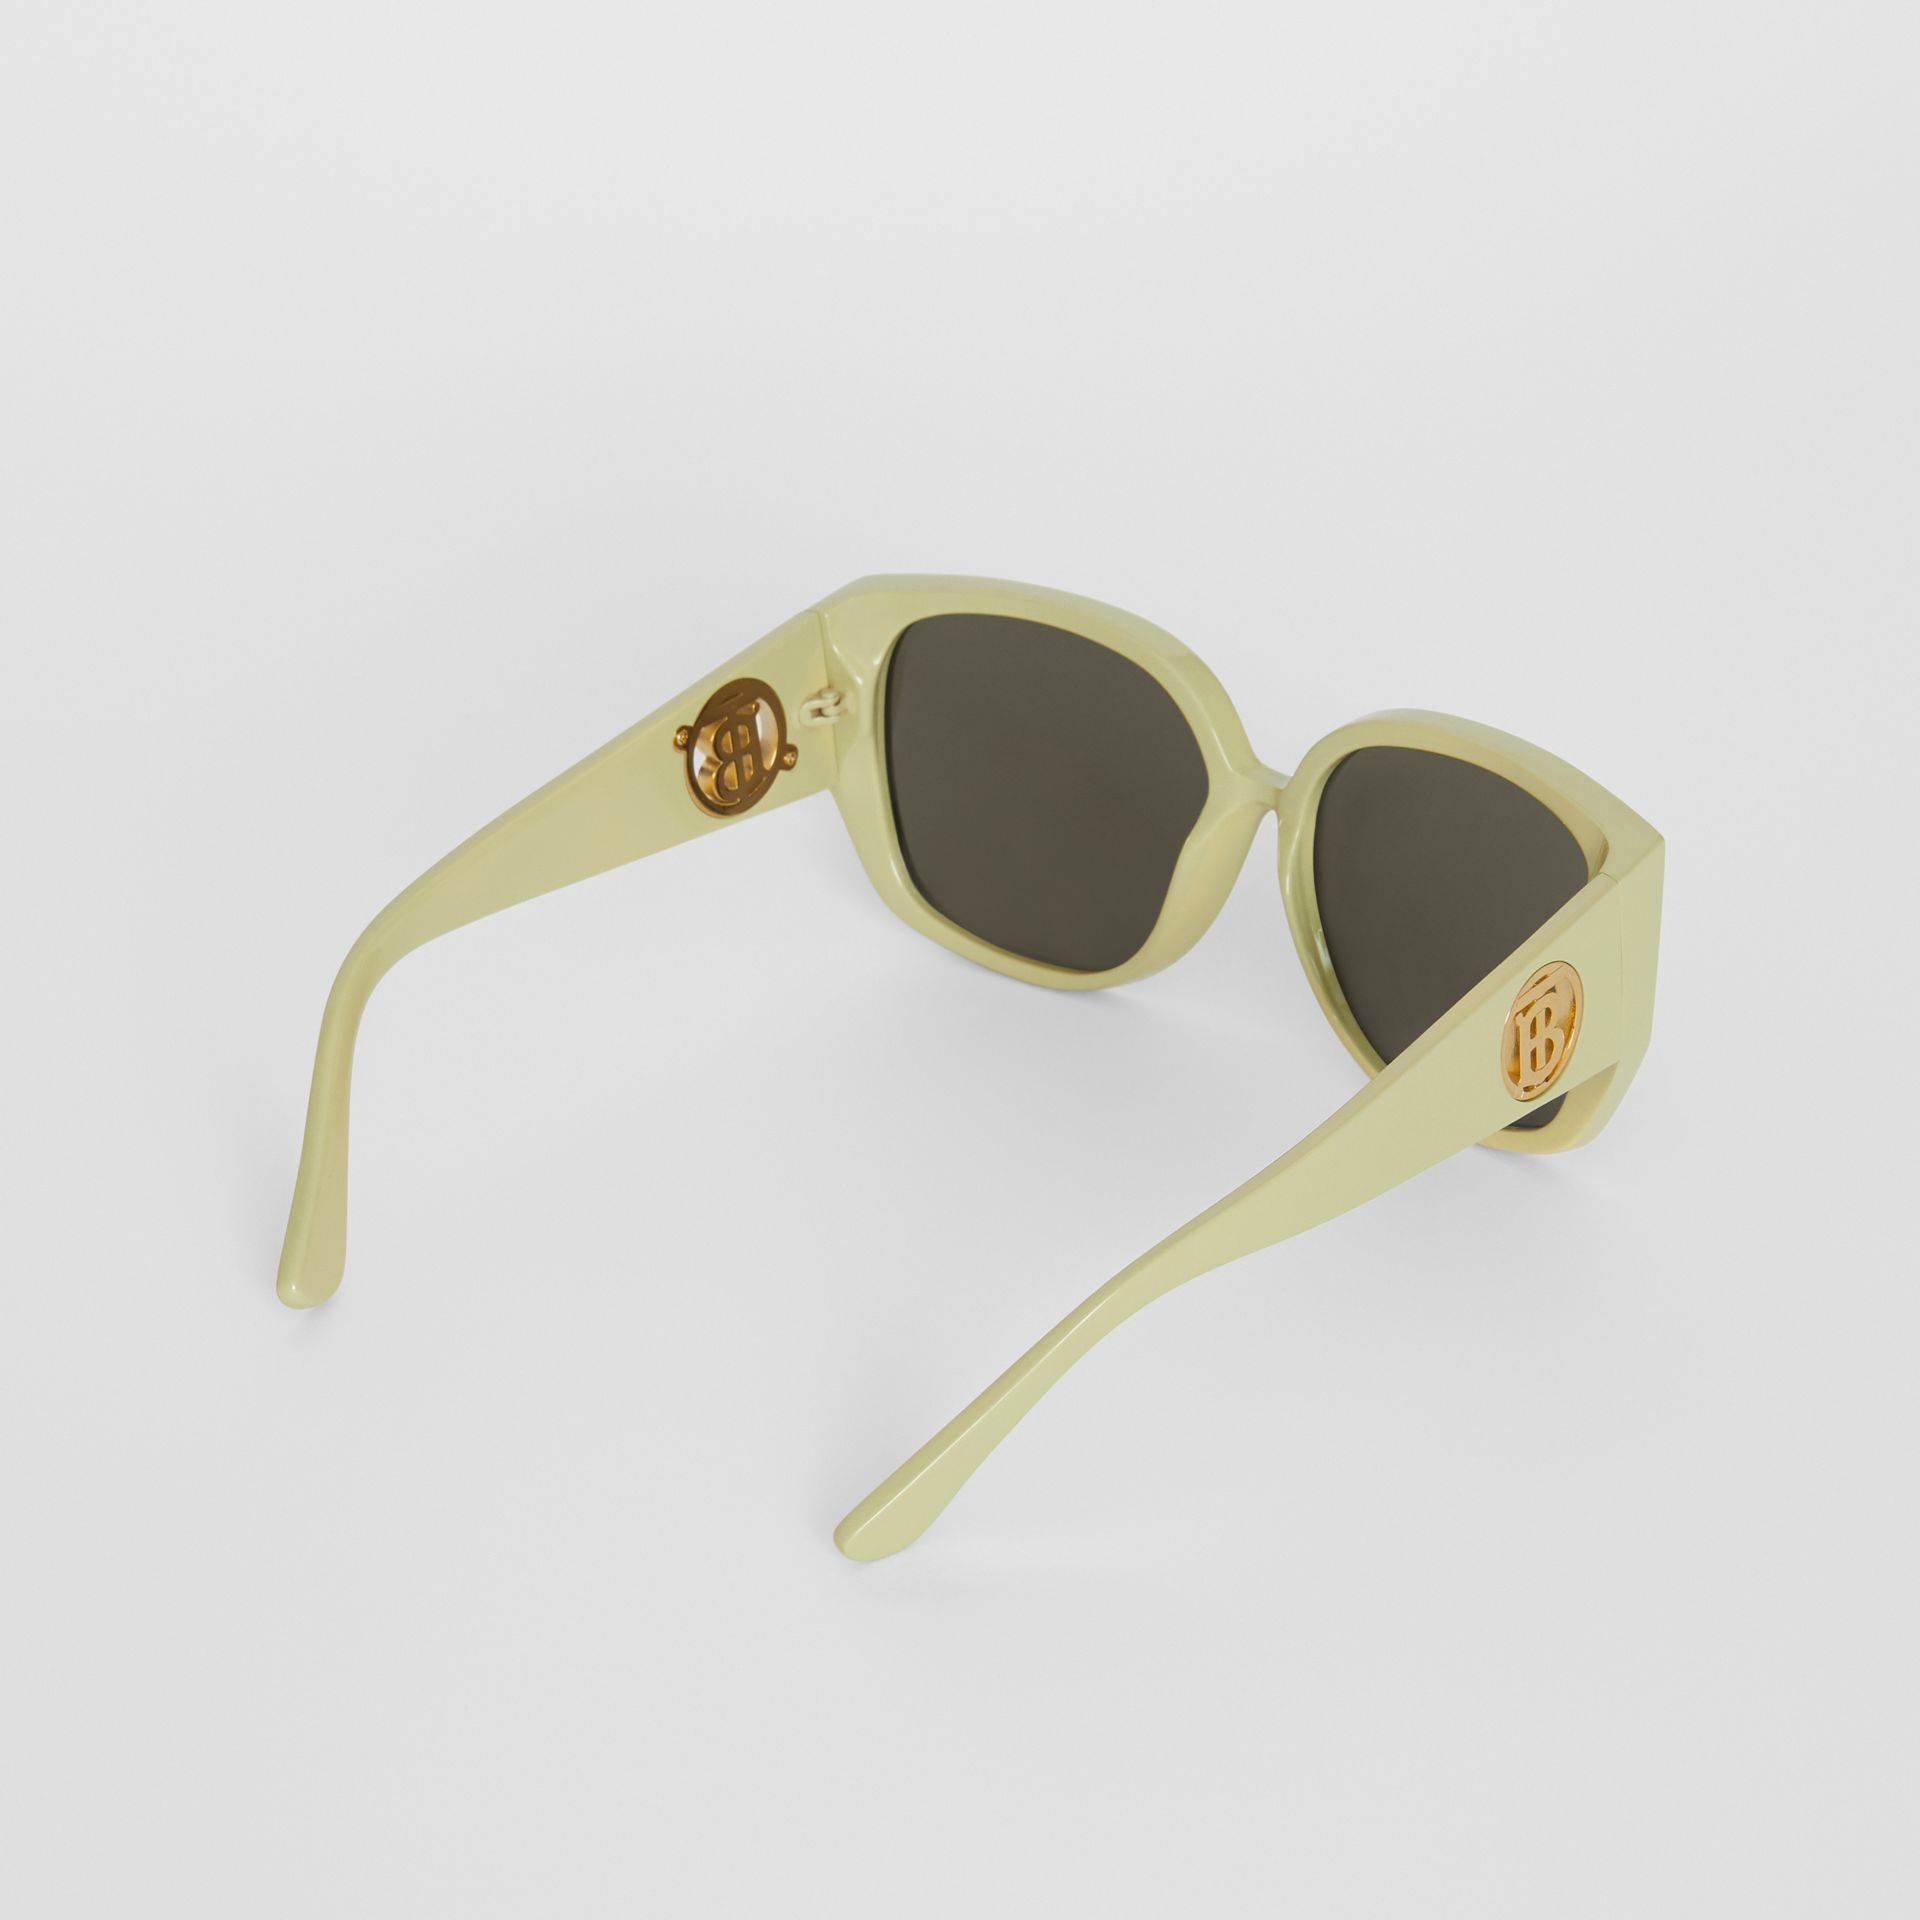 Oversized Butterfly Frame Sunglasses in Pistachio - Women | Burberry - gallery image 4